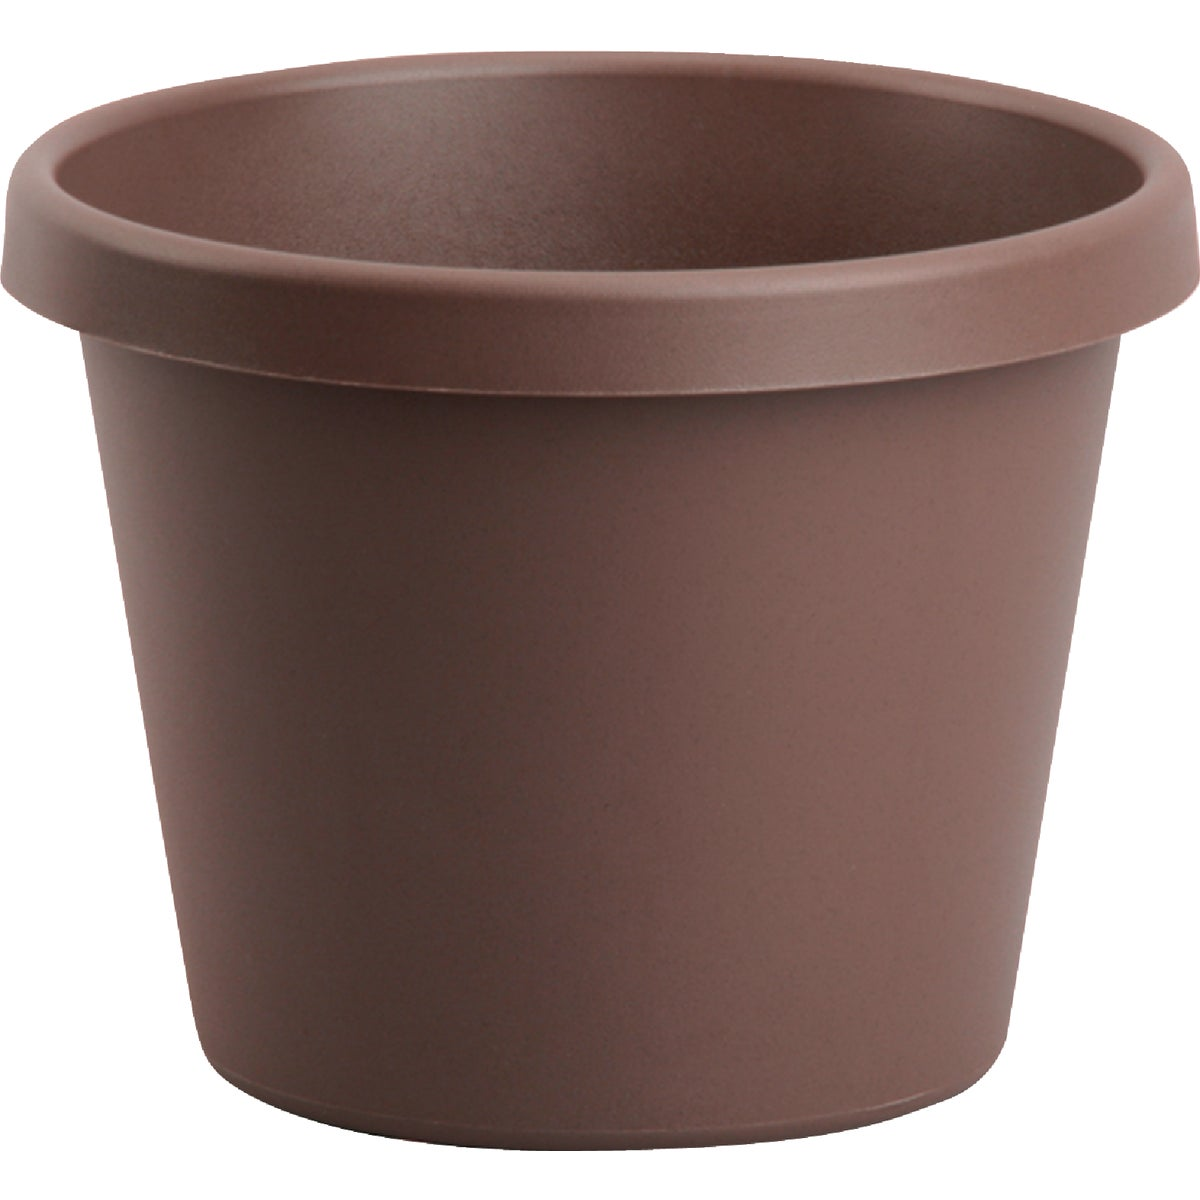 "6"" CHOCOLATE POLY POT - 450065-1001 by Fiskars Brands Inc"